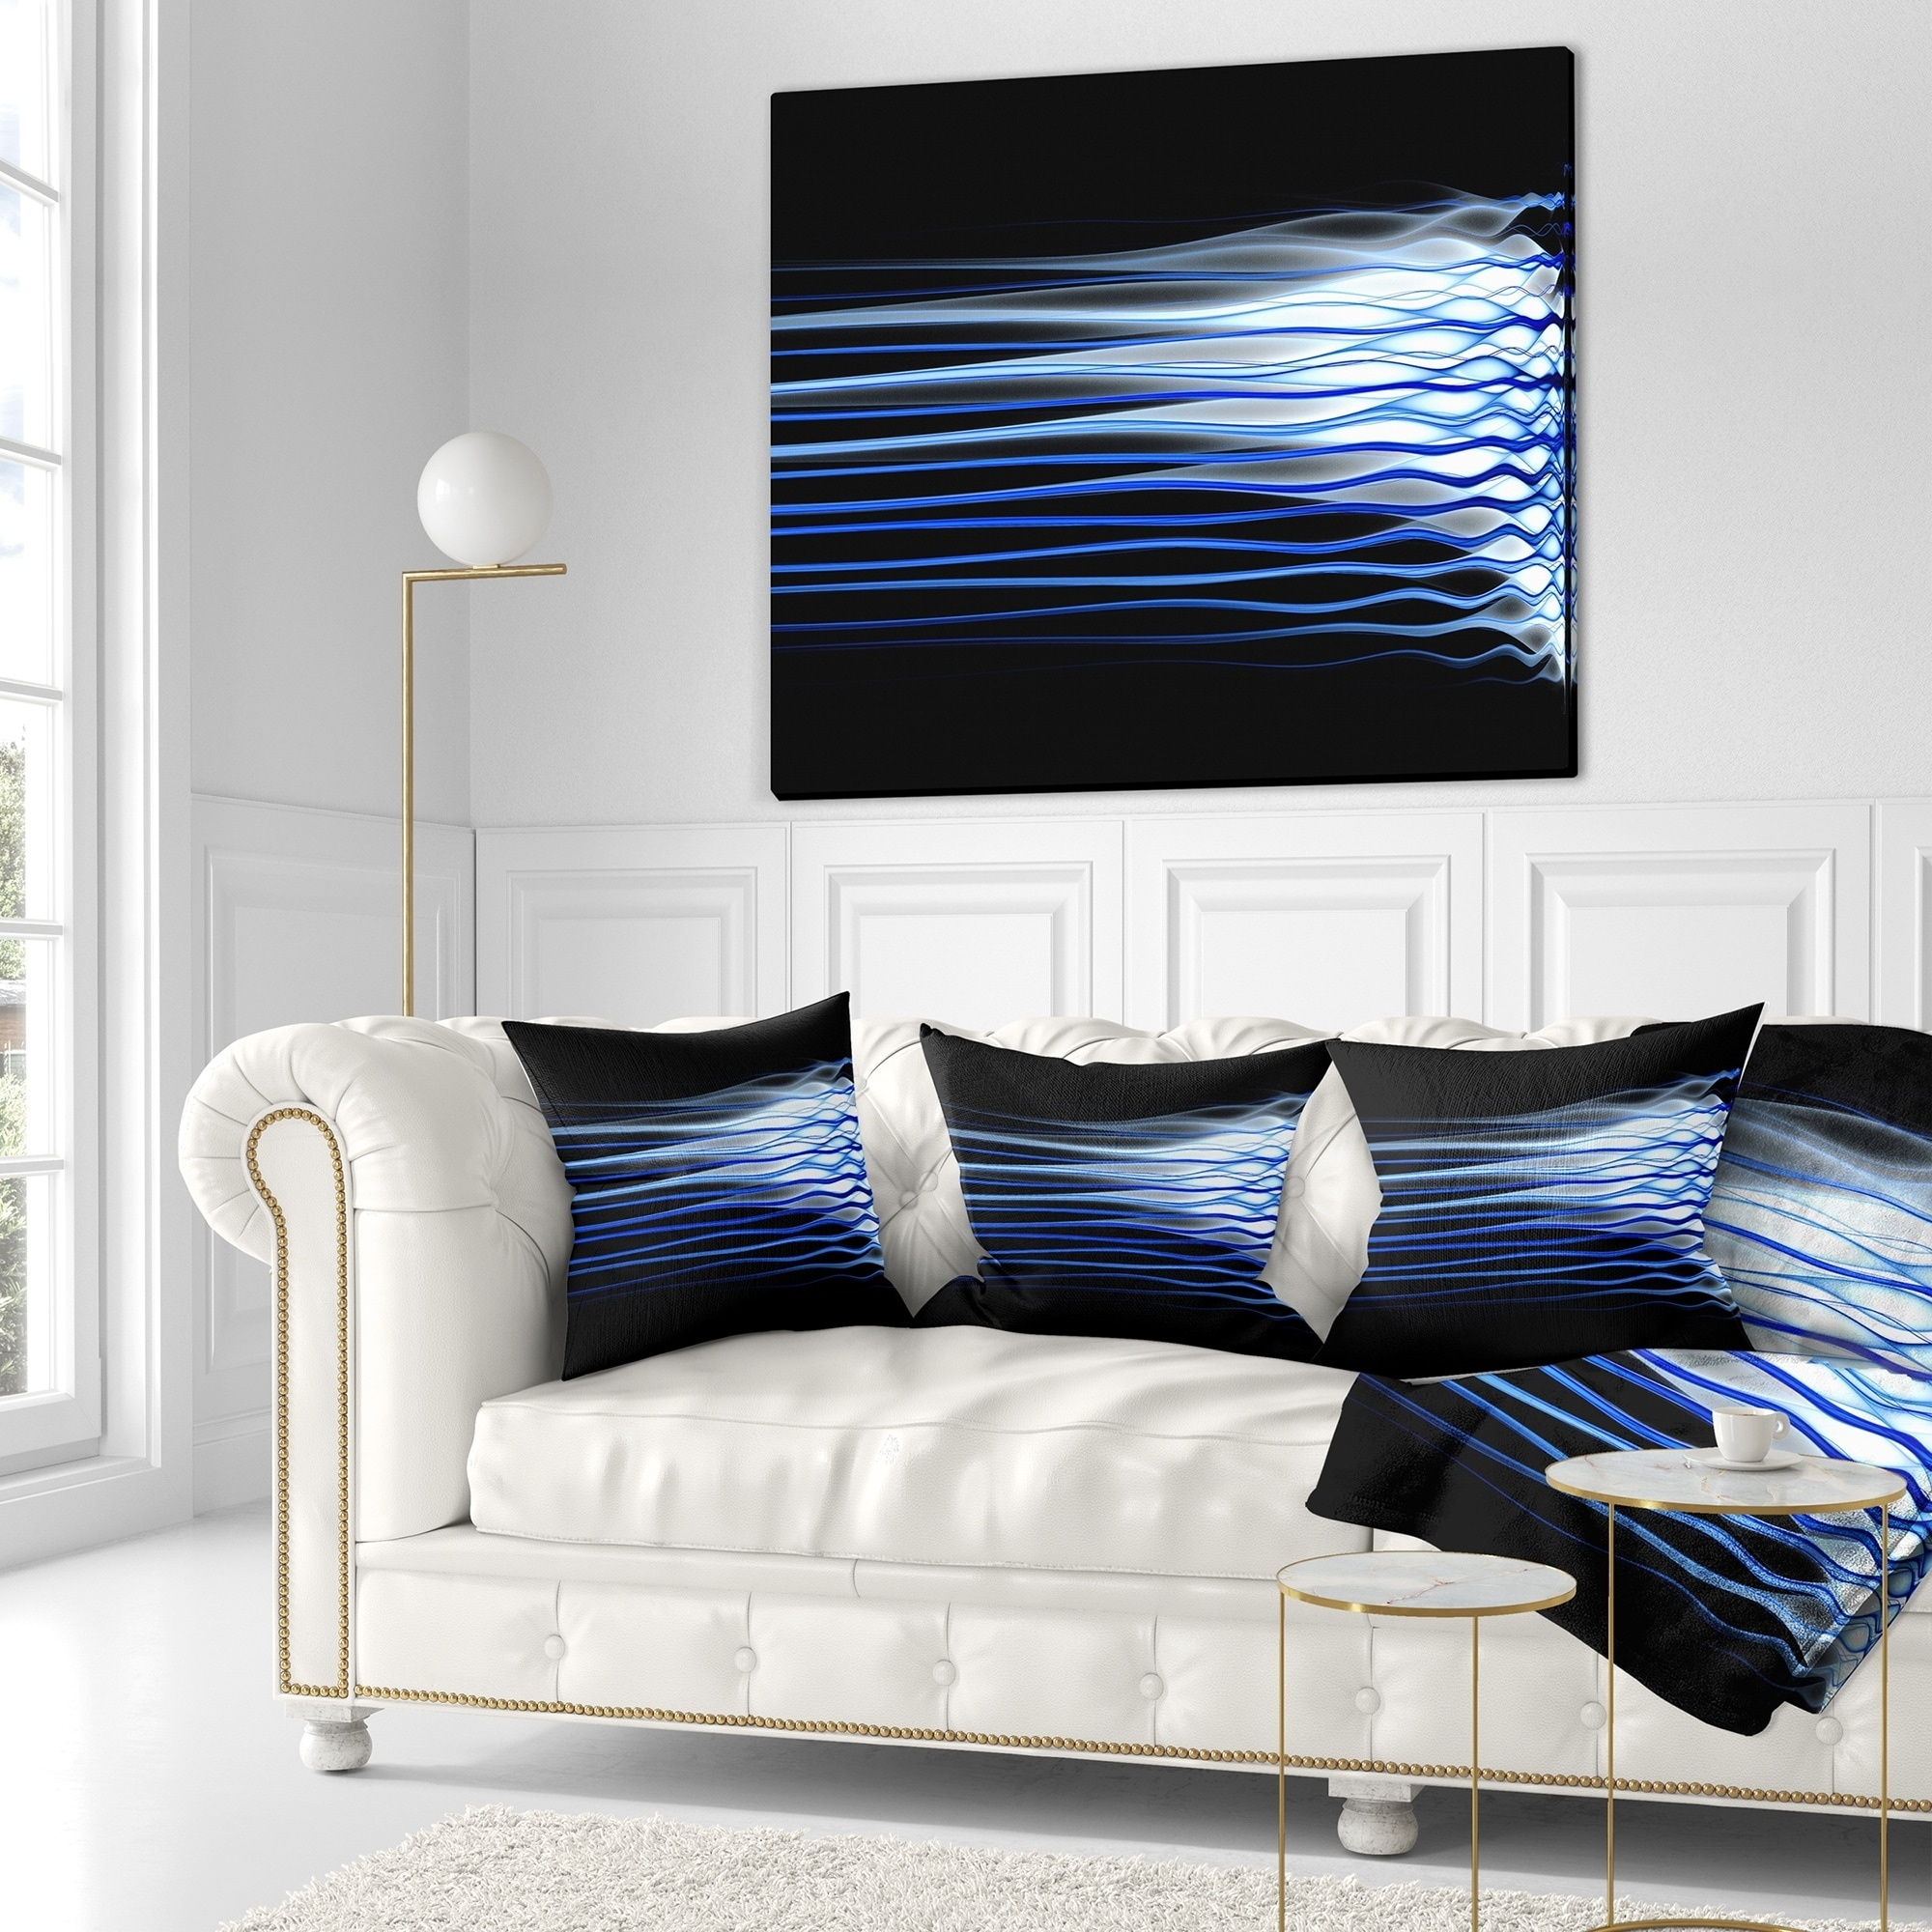 Insert Printed on Both Side Sofa Throw Pillow 26 in x 26 in in Designart CU16421-26-26 Dark Blue Fractal Waves Abstract Cushion Cover for Living Room